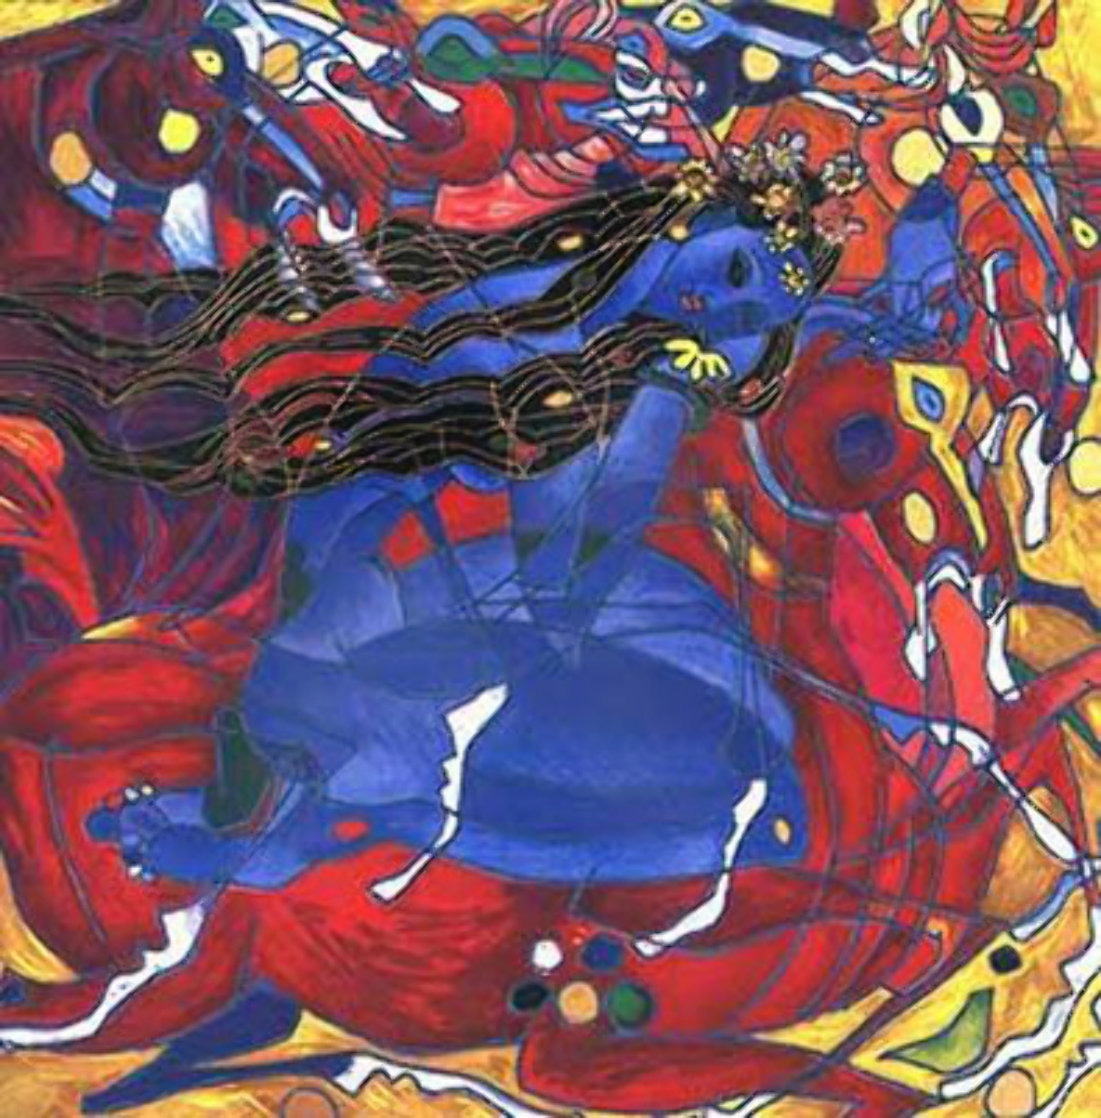 Sweet Lady  Yellow State PP 2001 Limited Edition Print by Tie-Feng Jiang